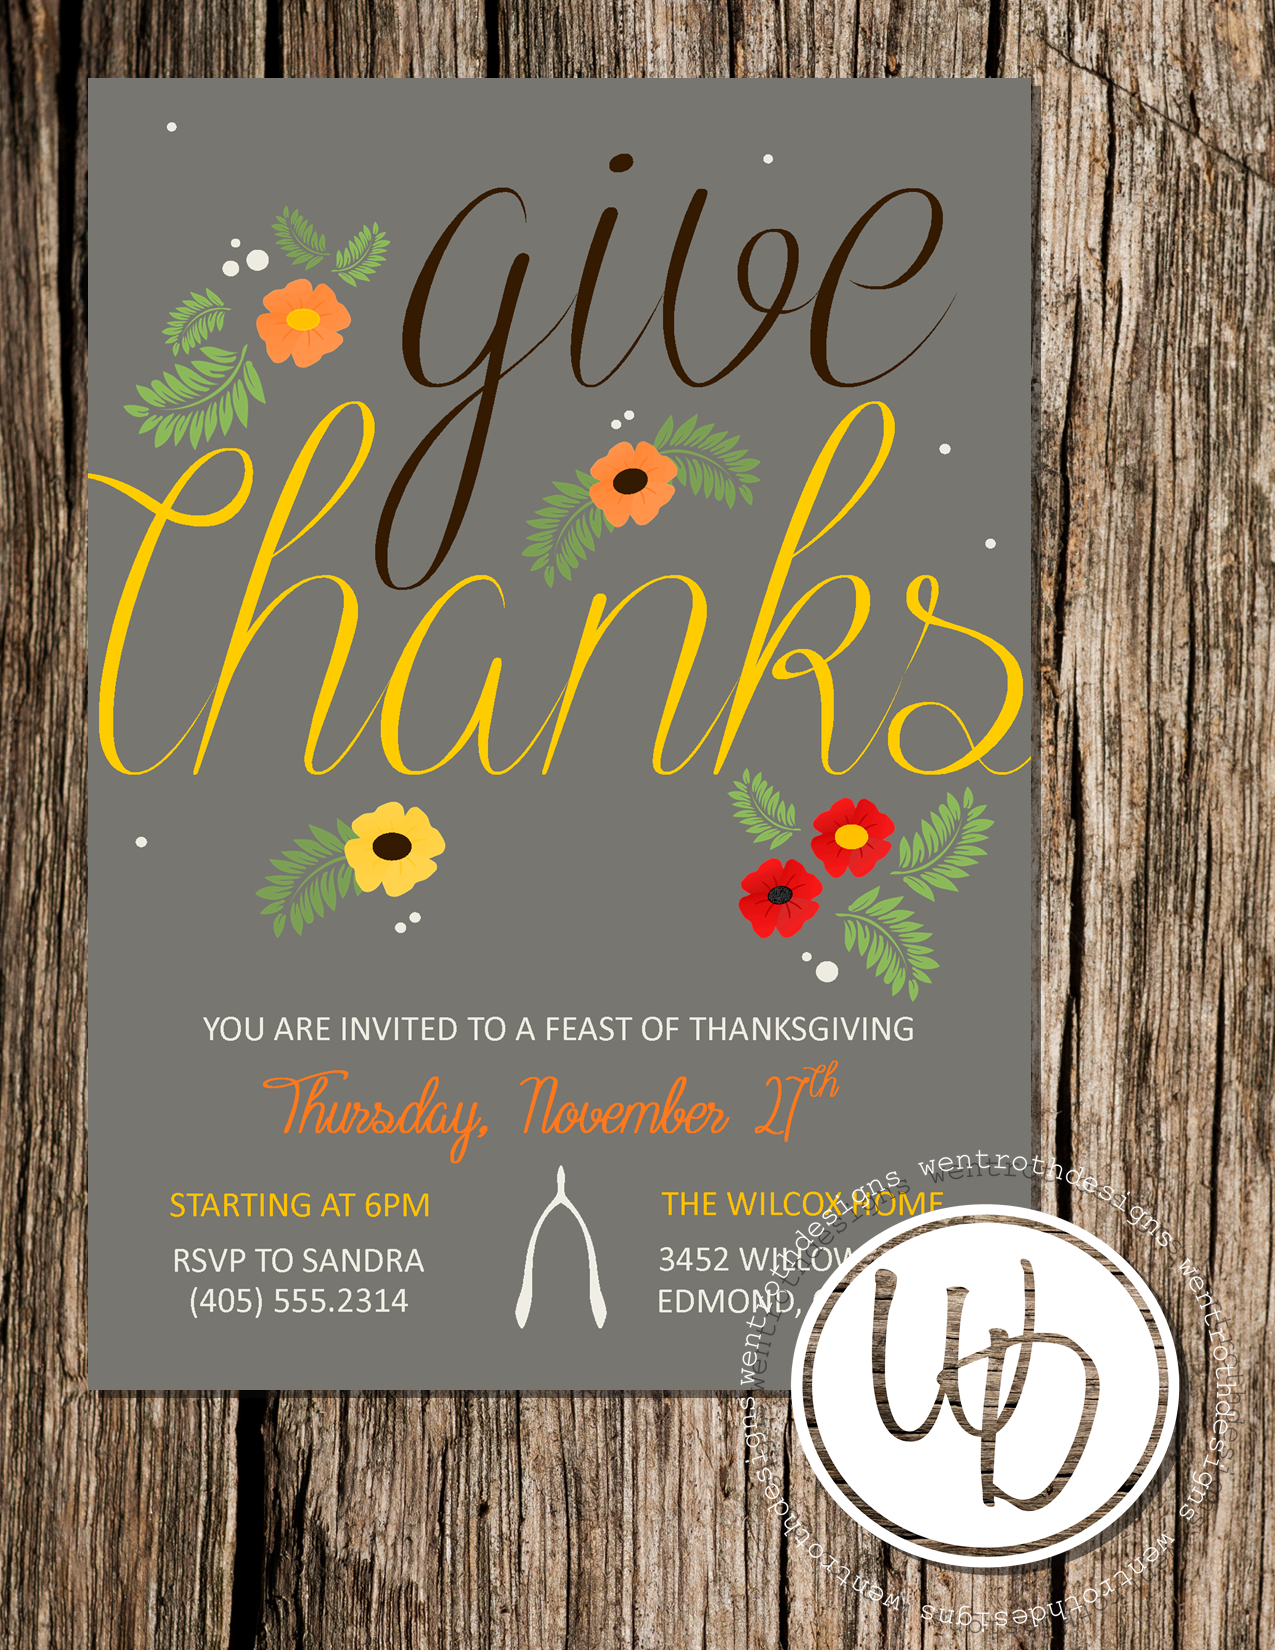 Rustic Thanksgiving Invitation By Wentroth Designs Visit Us On Facebook To Request A Price Quote